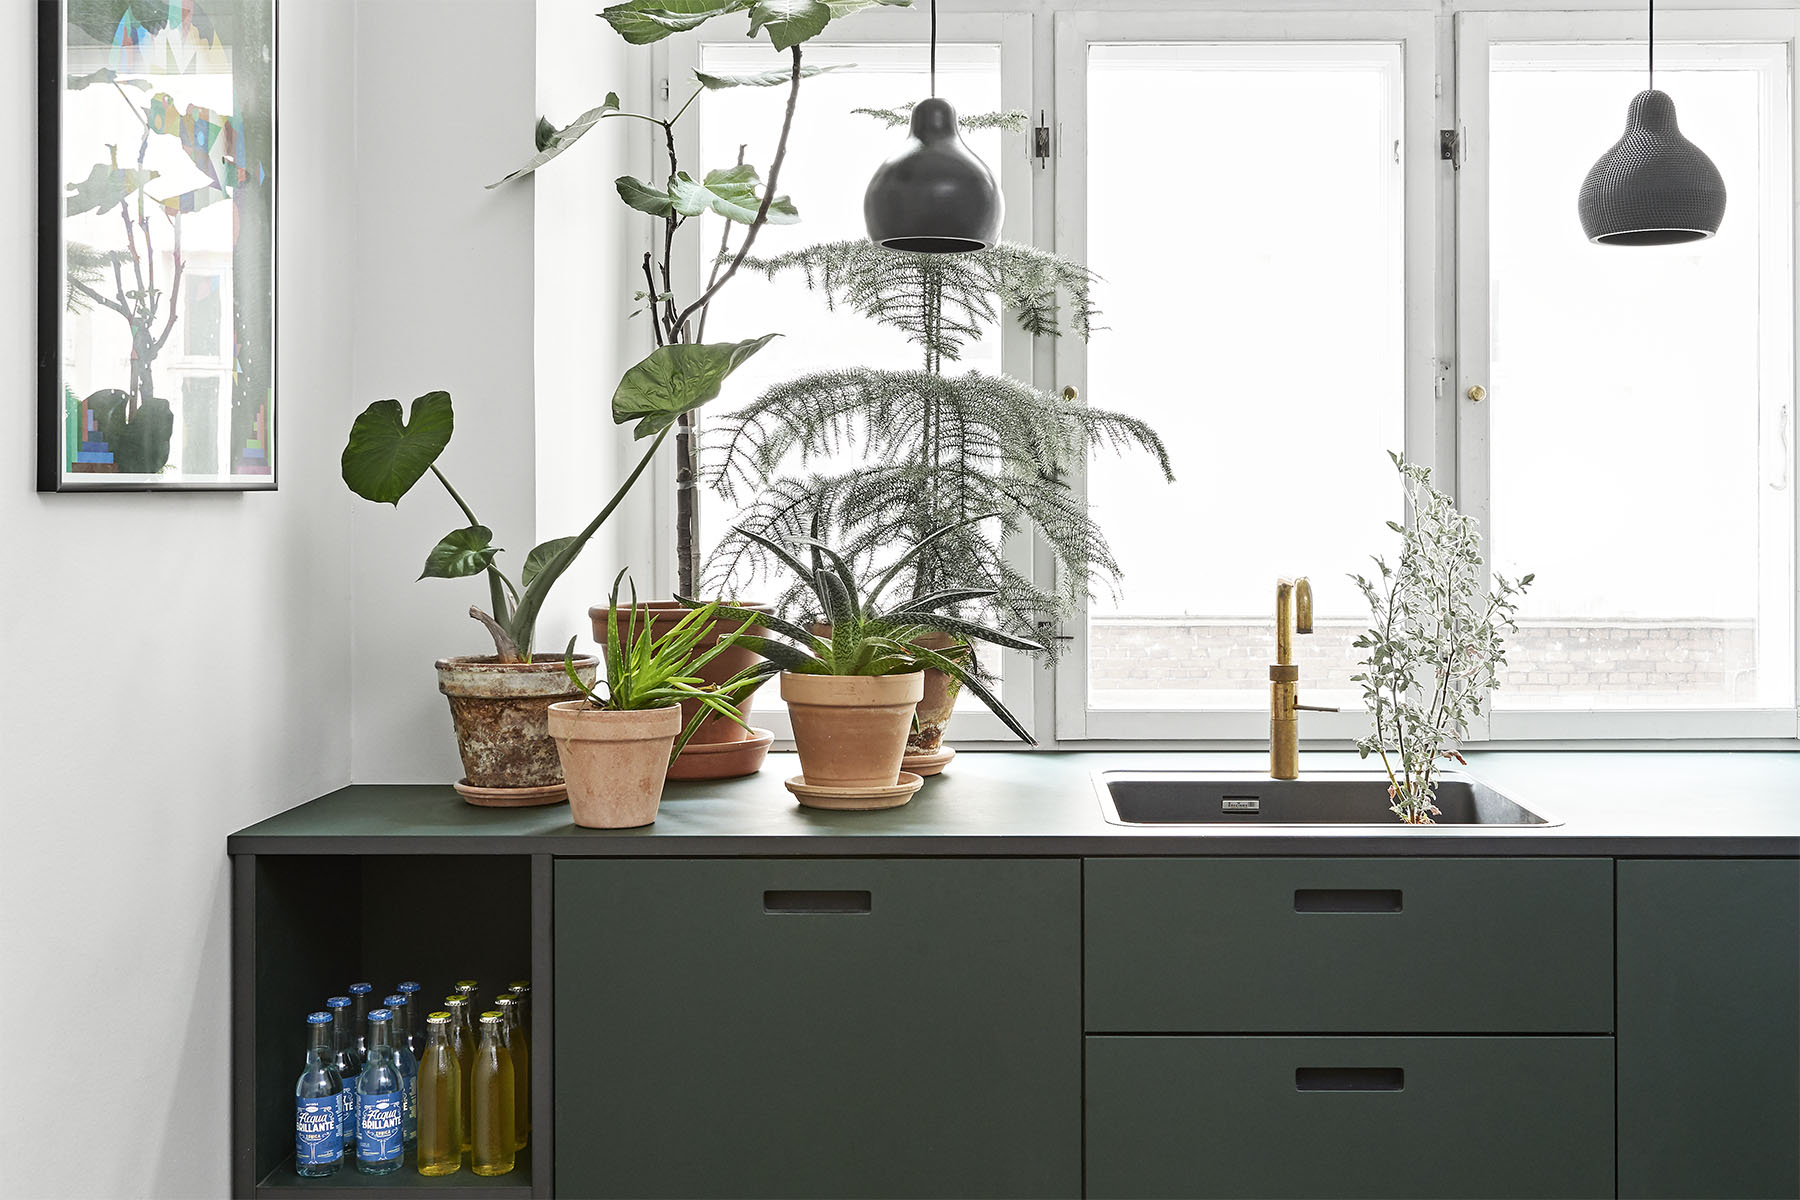 ikeahack-designerkøkken-nye-fronter-and-shufl-linoleum-conifer-kitchen-gogreen-front-for-ikeakitchen